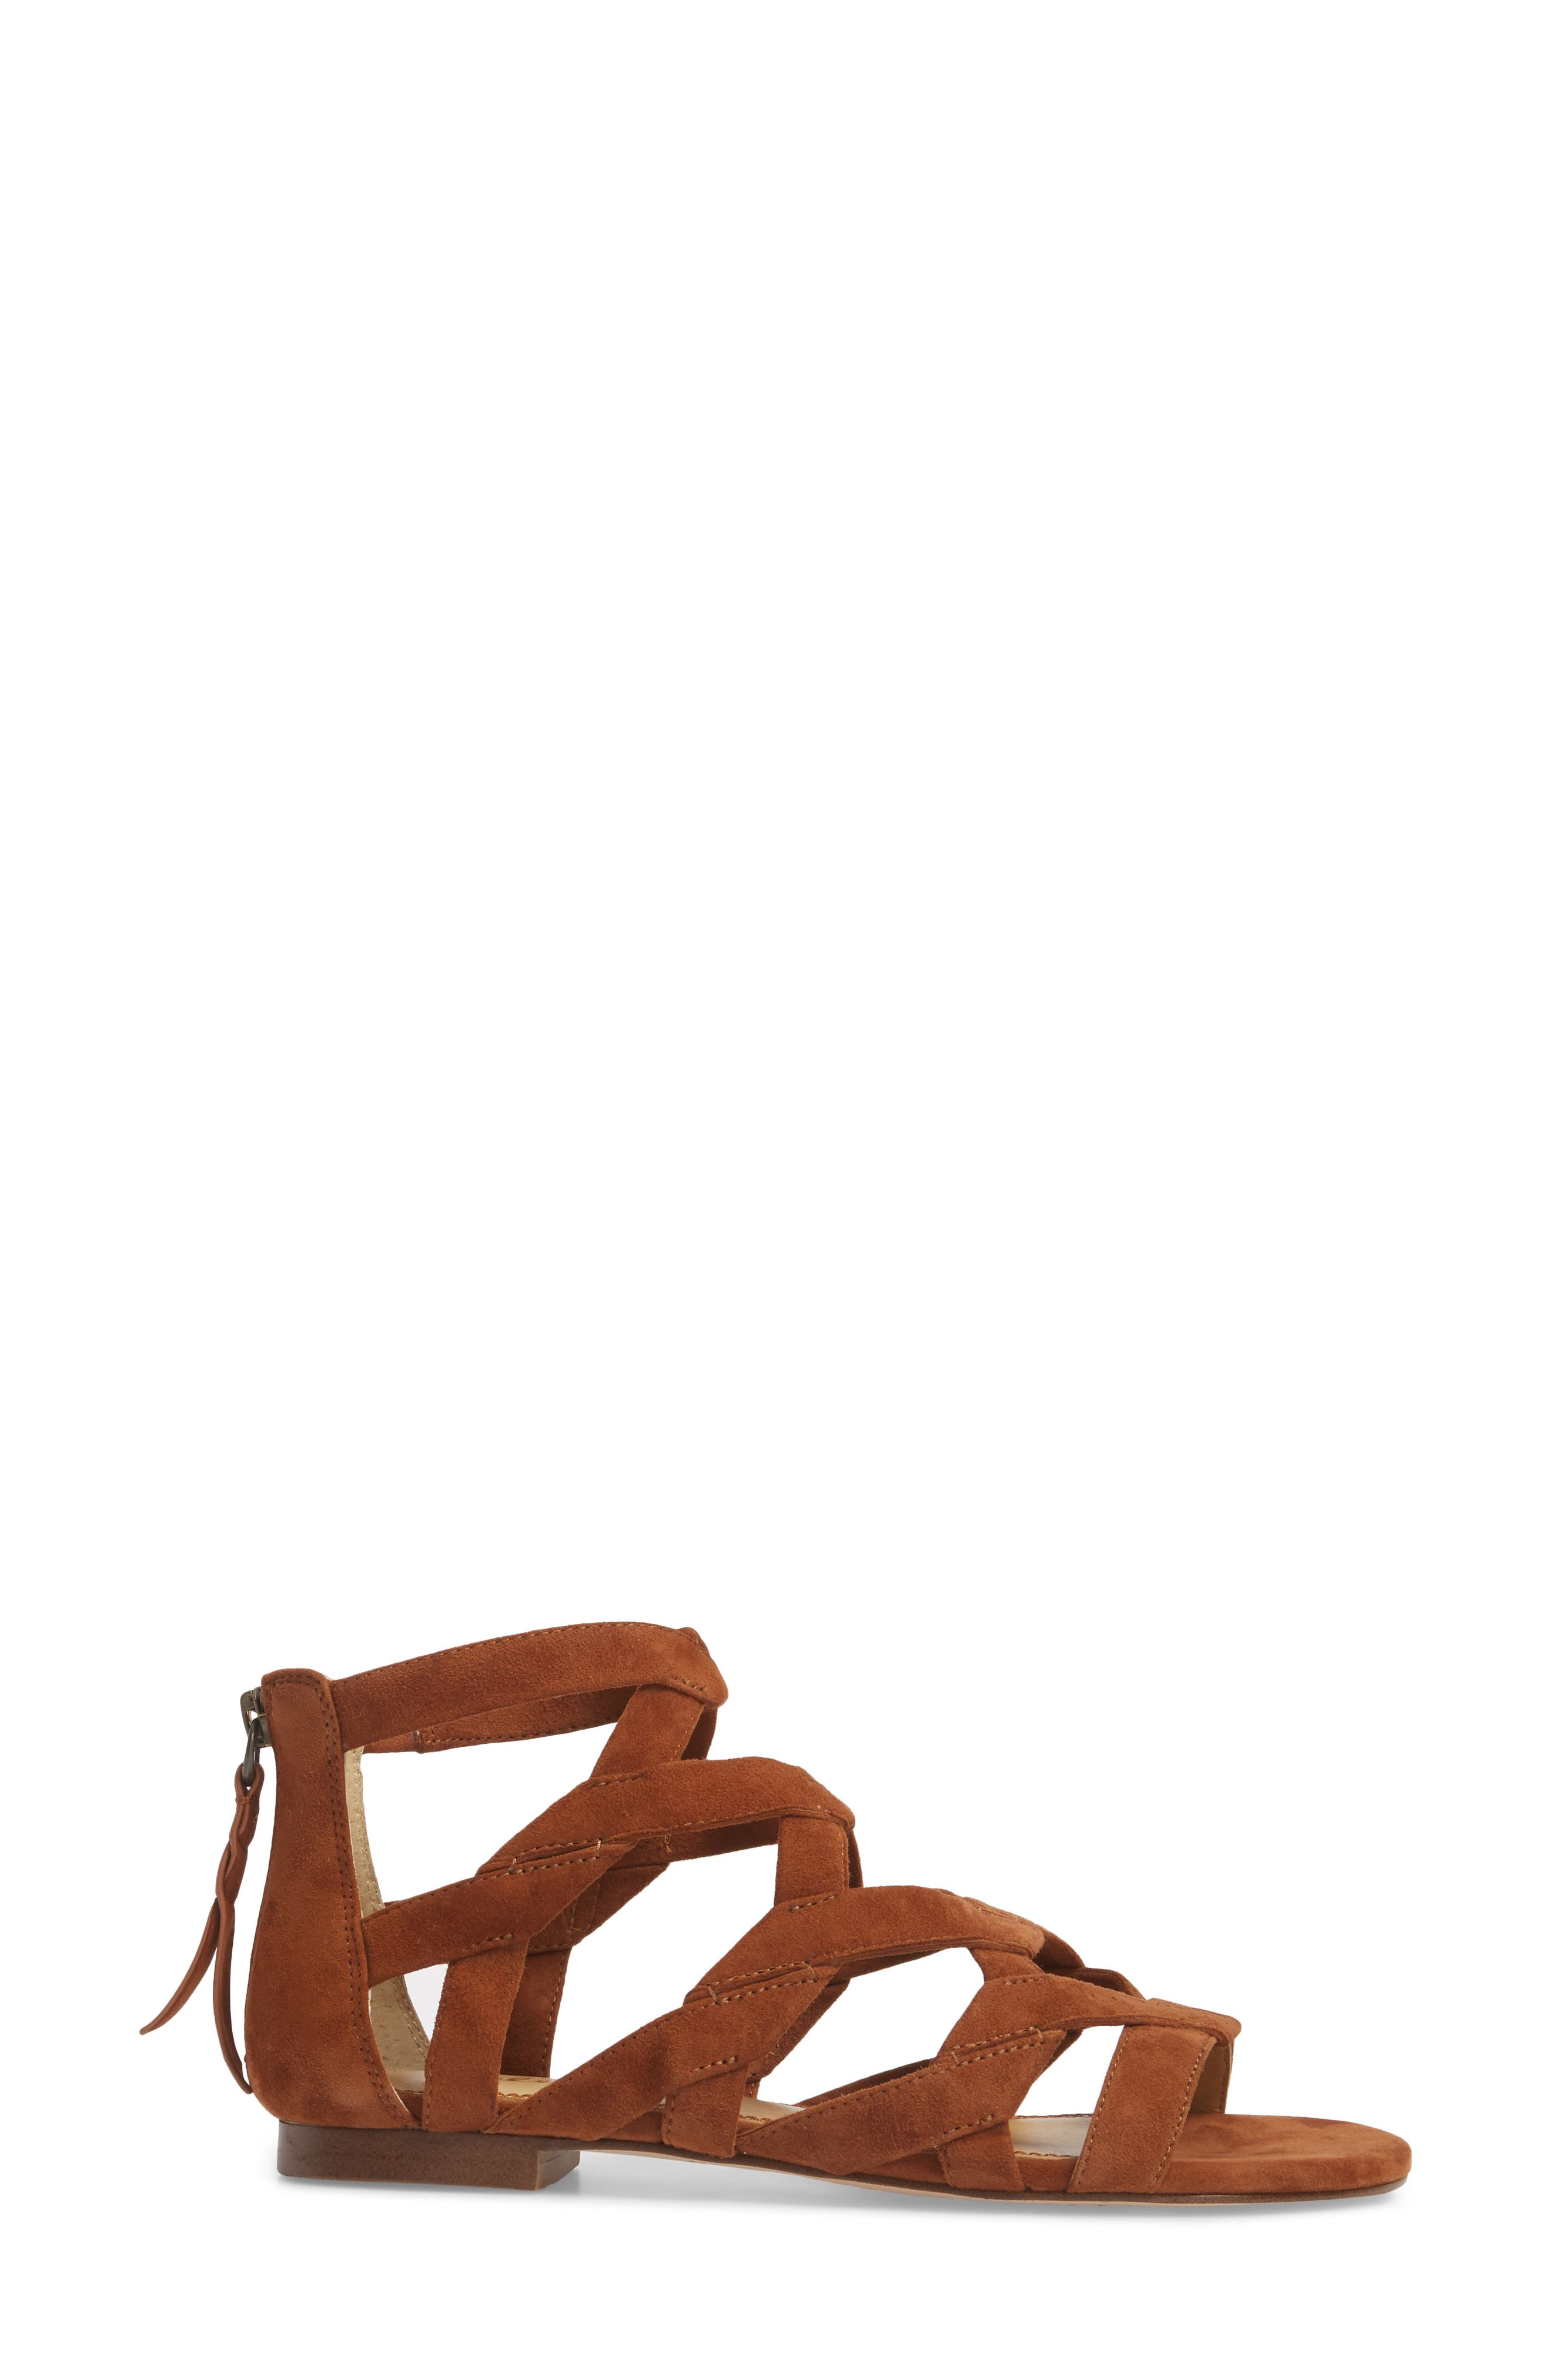 Barrett Mid Top Cage Sandal,                             Alternate thumbnail 3, color,                             Caramel Suede